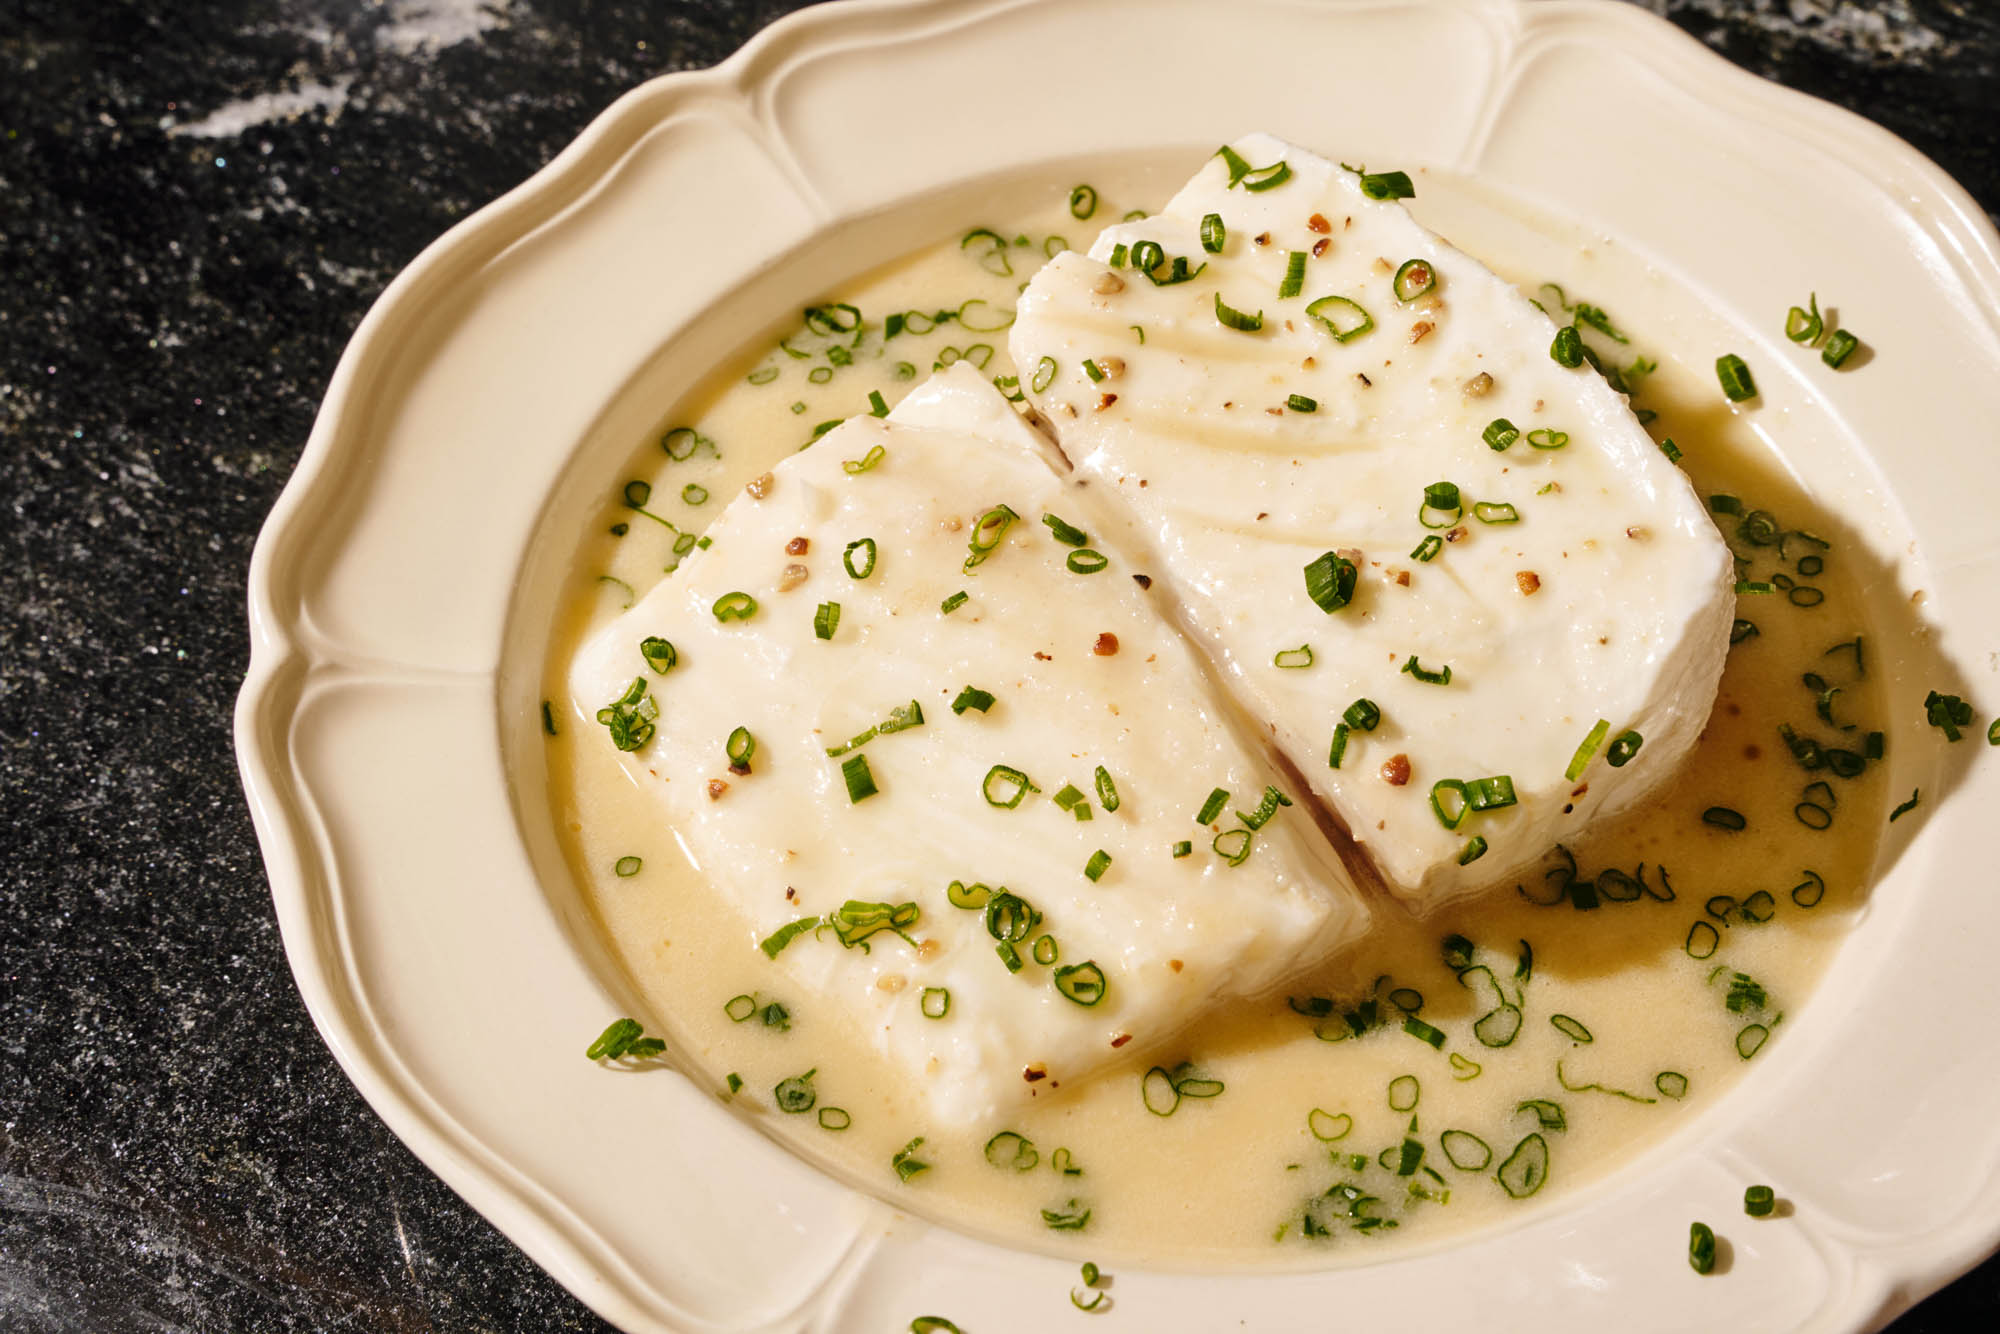 Poached halibut with butter sauce and thinly sliced chives